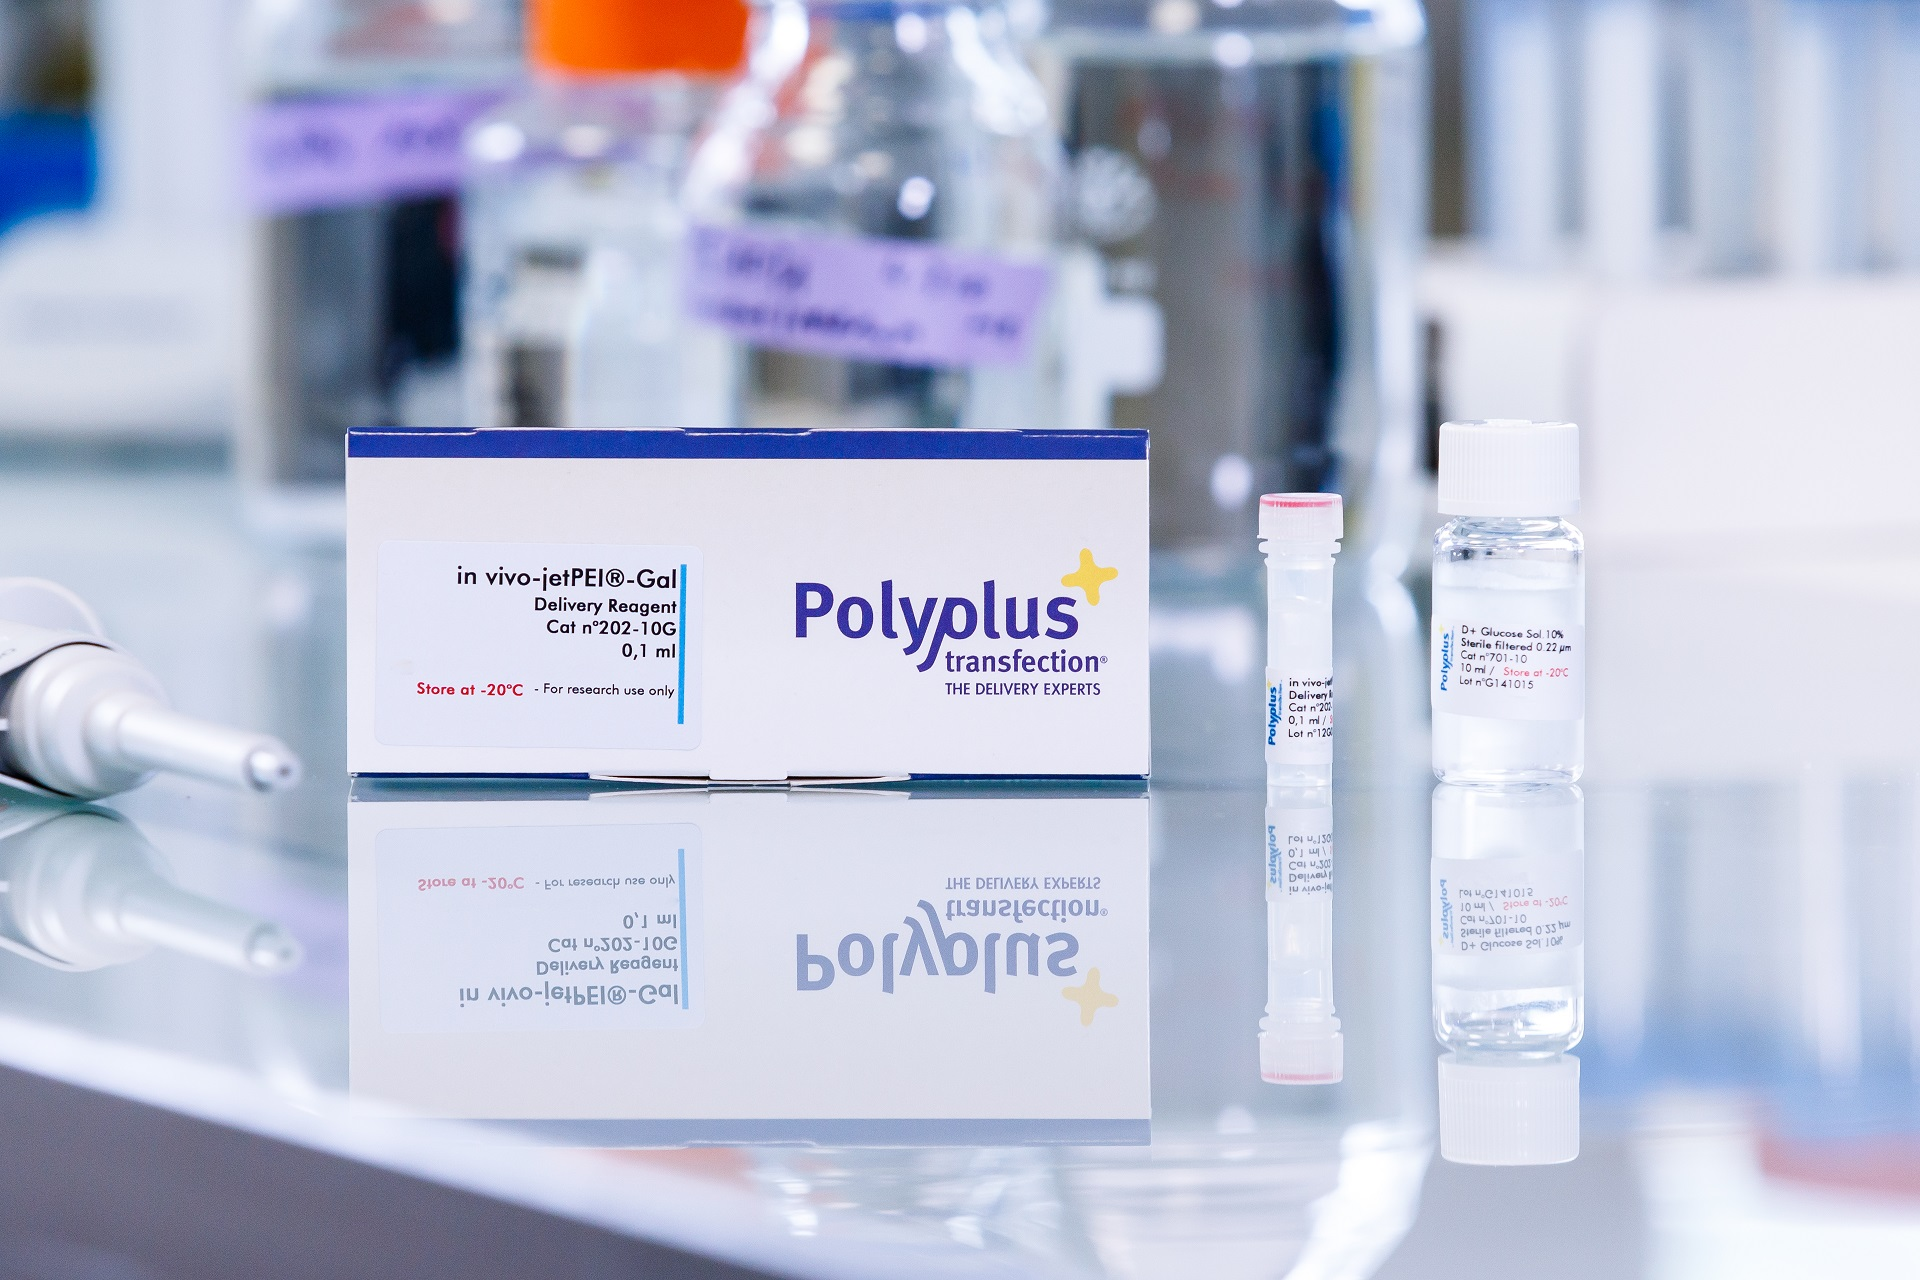 in vivo-jetPEI-Gal packaging - Polyplus-transfection